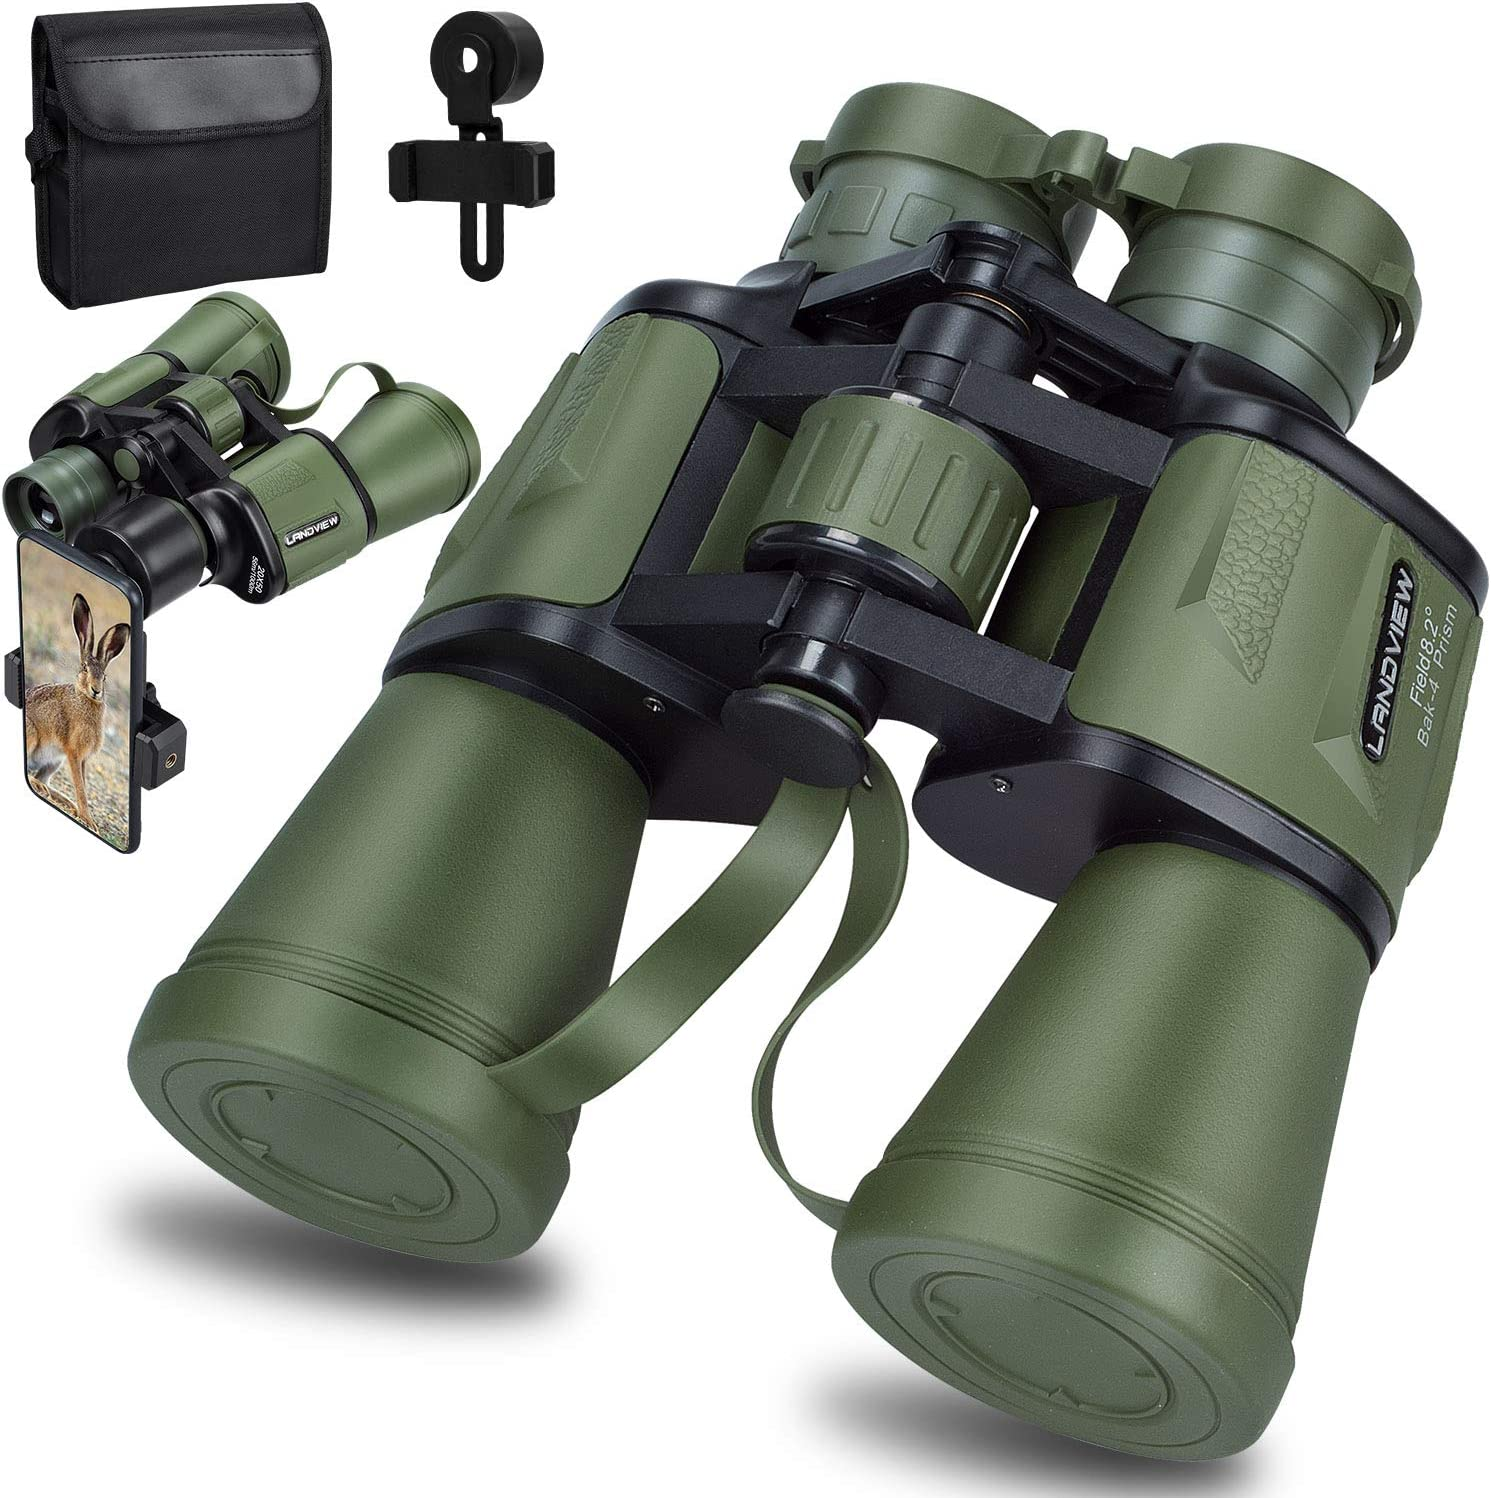 20x50 Roof Prism Binoculars Selling rankings for Our shop OFFers the best service Professional HD Binocula Adults